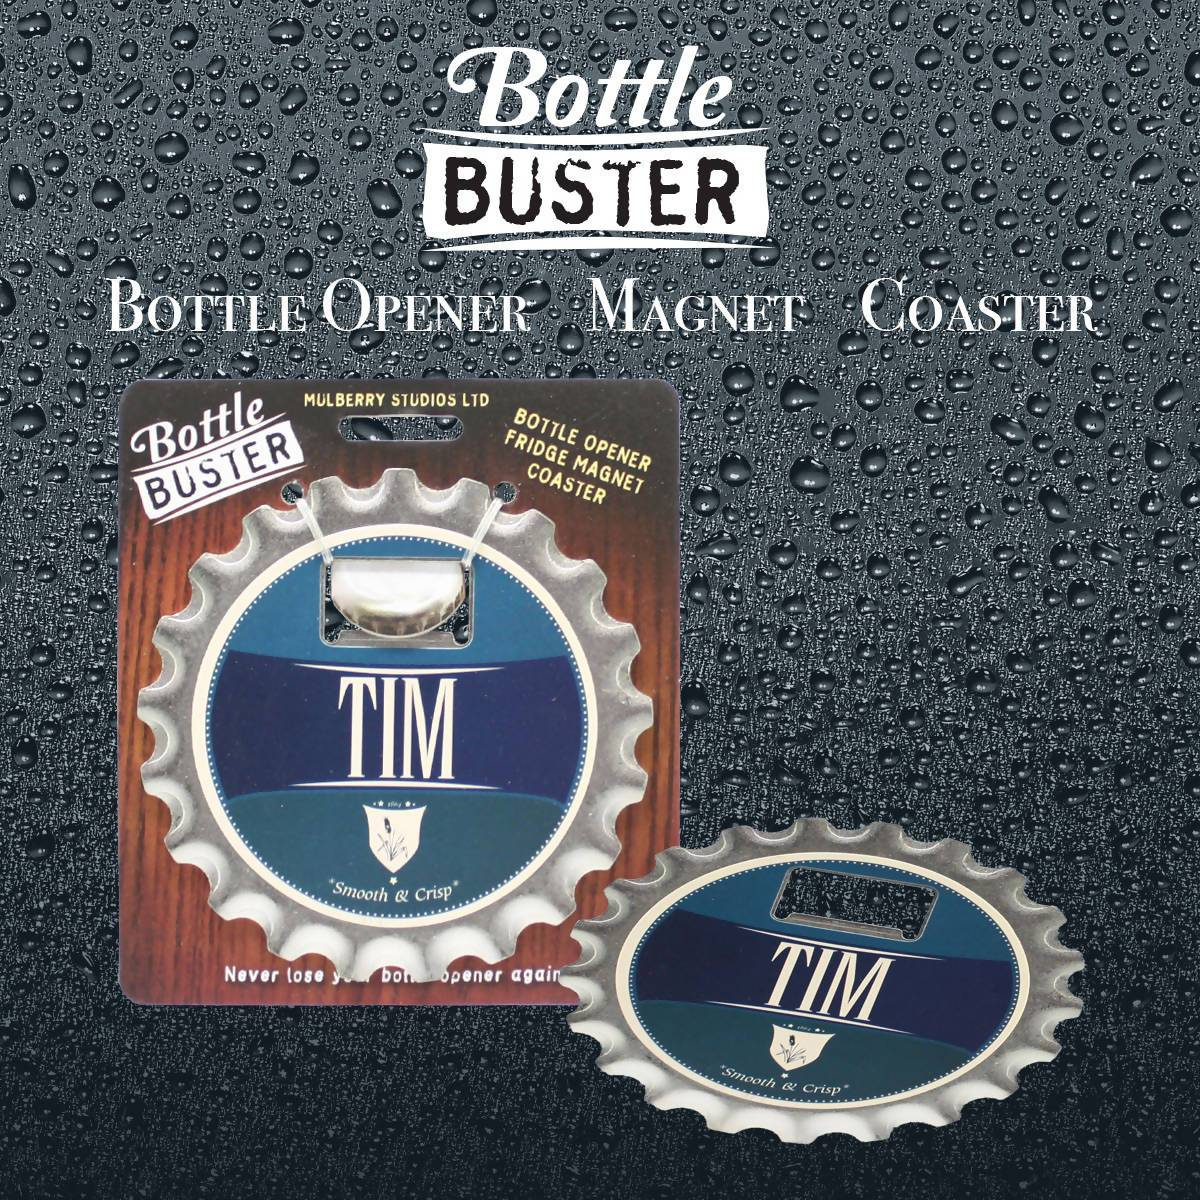 BOTTLE BUSTER - Best Bottle Opener : Tim - Bottle Openers - La Belle Collection - Naiise